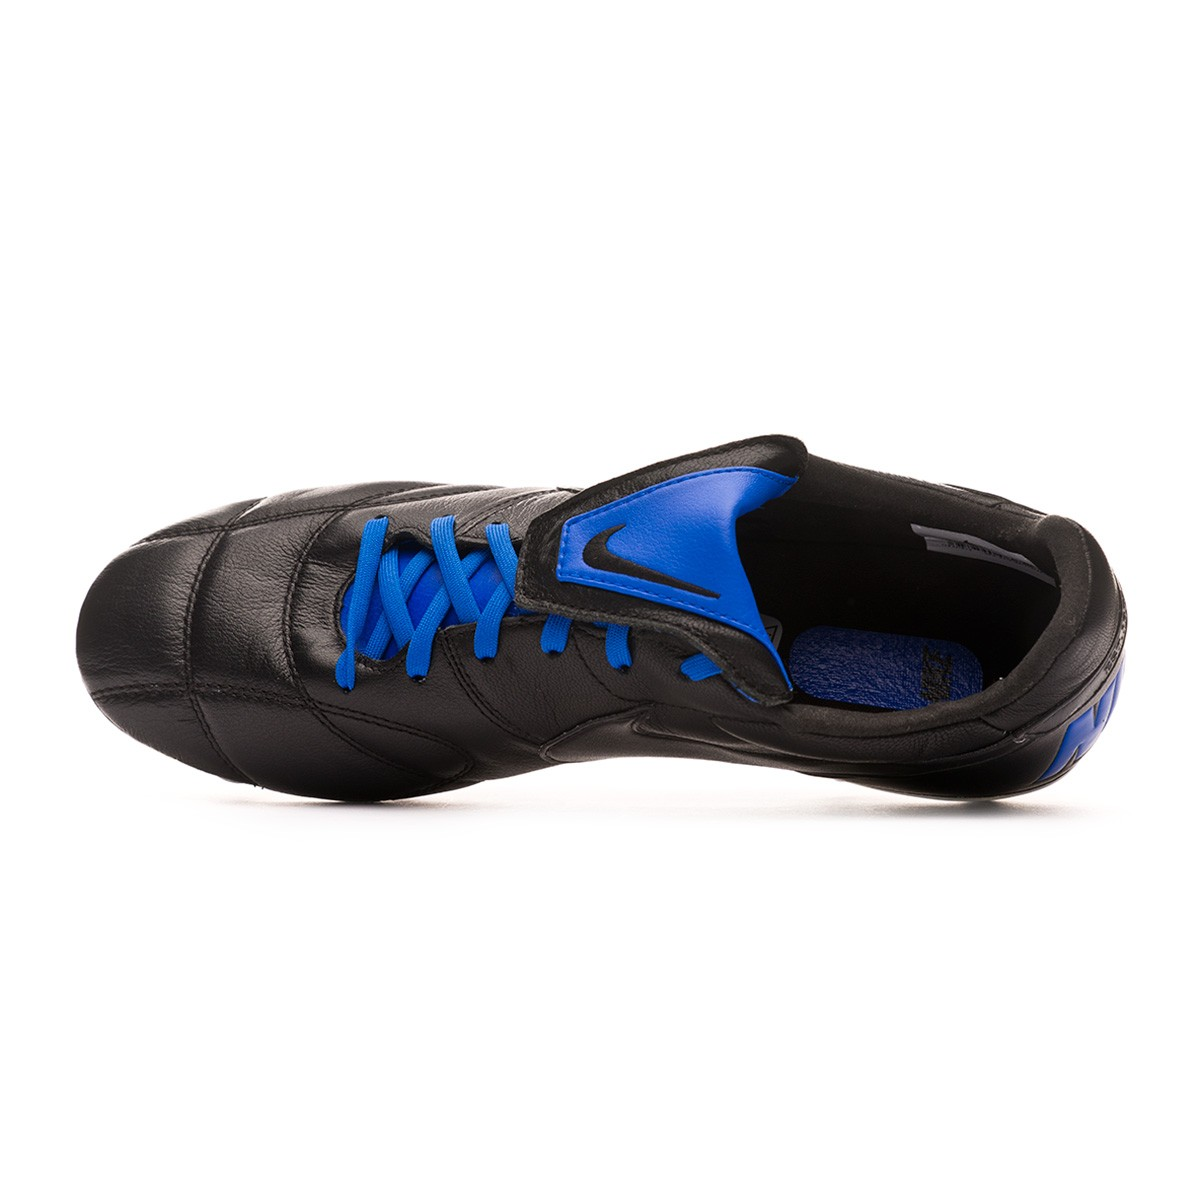 95c244a342d62 Football Boots Nike Tiempo Premier II Anti-Clog Traction SG-Pro Black-Racer  blue - Tienda de fútbol Fútbol Emotion